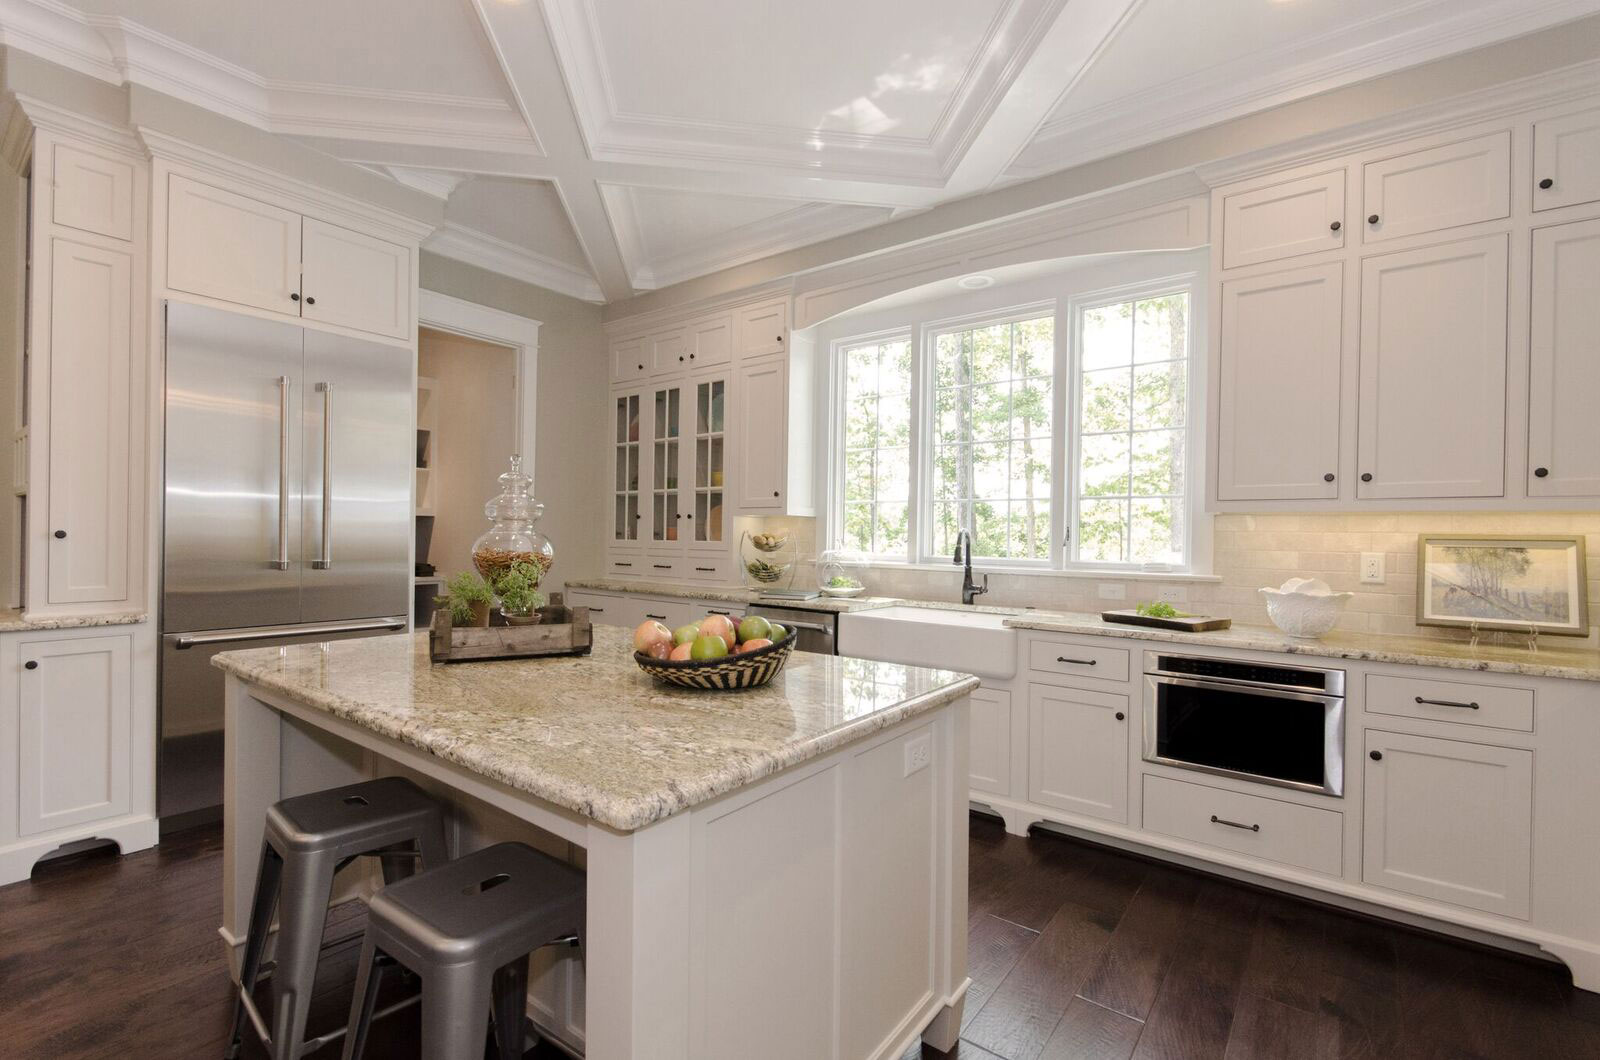 Marvin Custom Casement Kitchen Windows